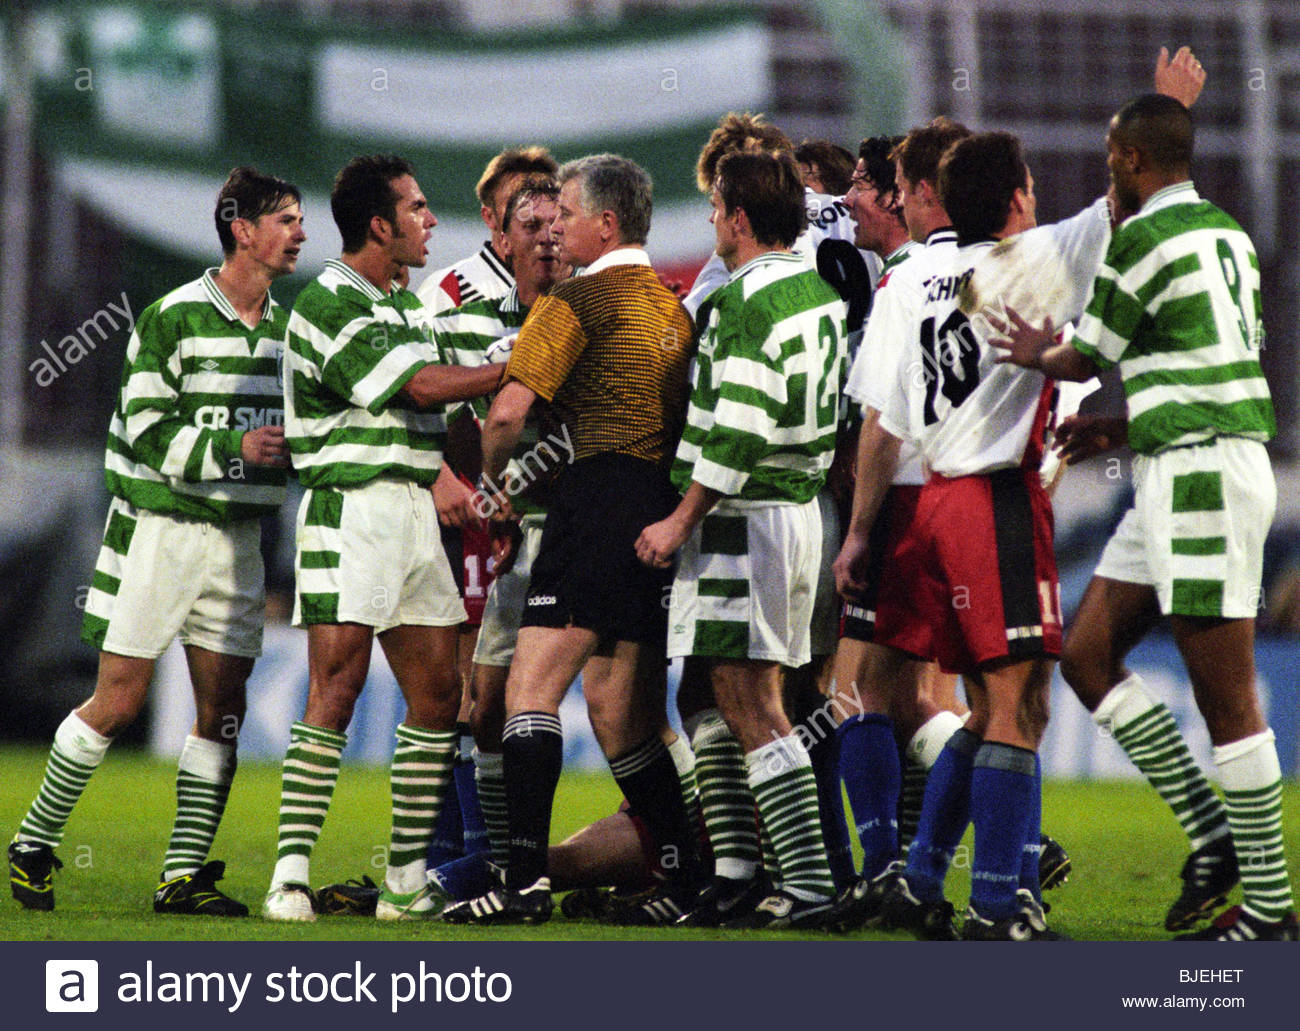 24/09/96 UEFA CUP 1ST RND 2ND LEG SV HAMBURG V CELTIC (2-0 AGG 4-0) HAMBURG - GERMANY The referee steps in to defuse - Stock Image